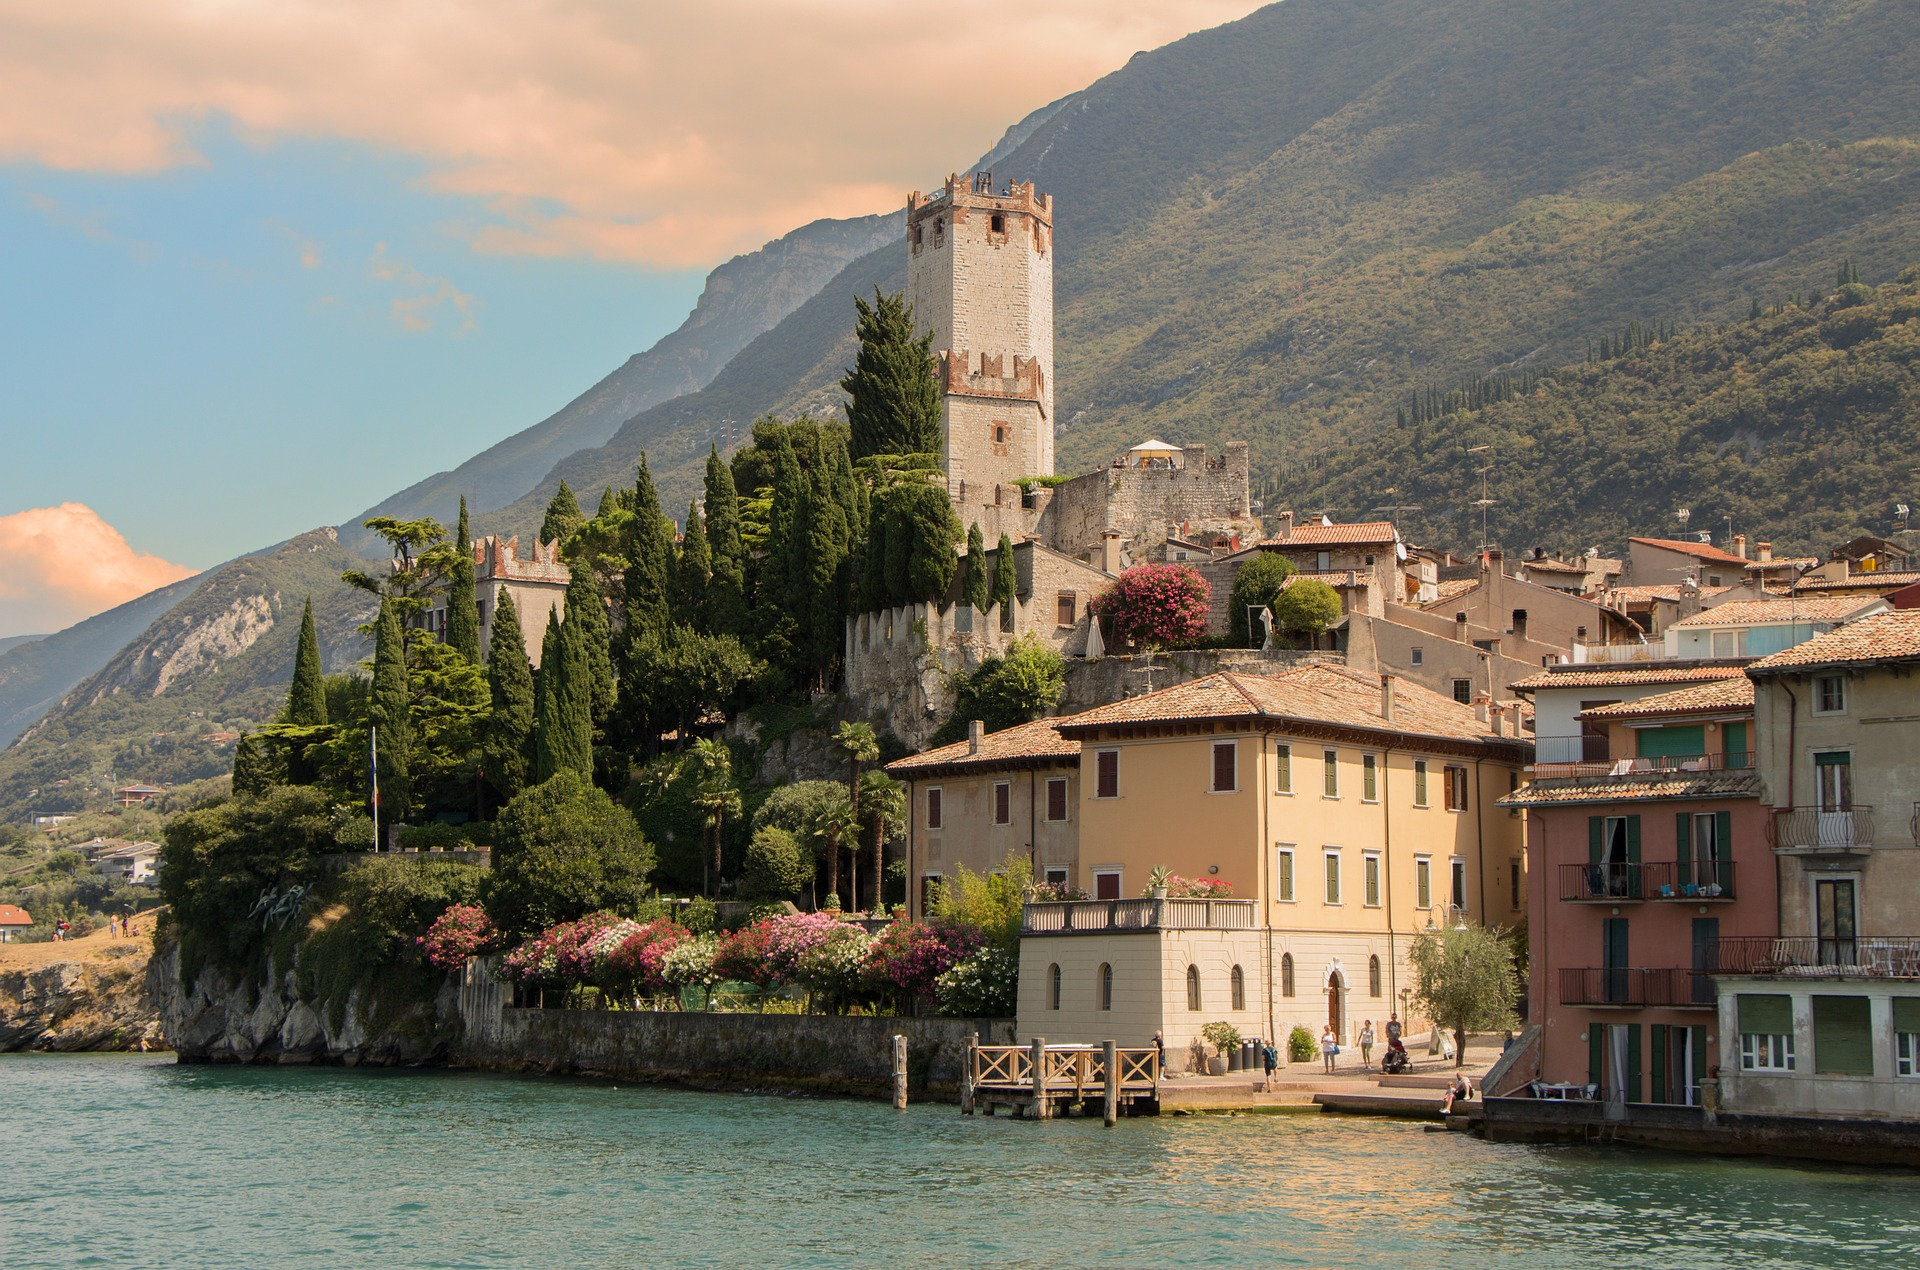 Spiritual journey: a meditation retreat in Italy